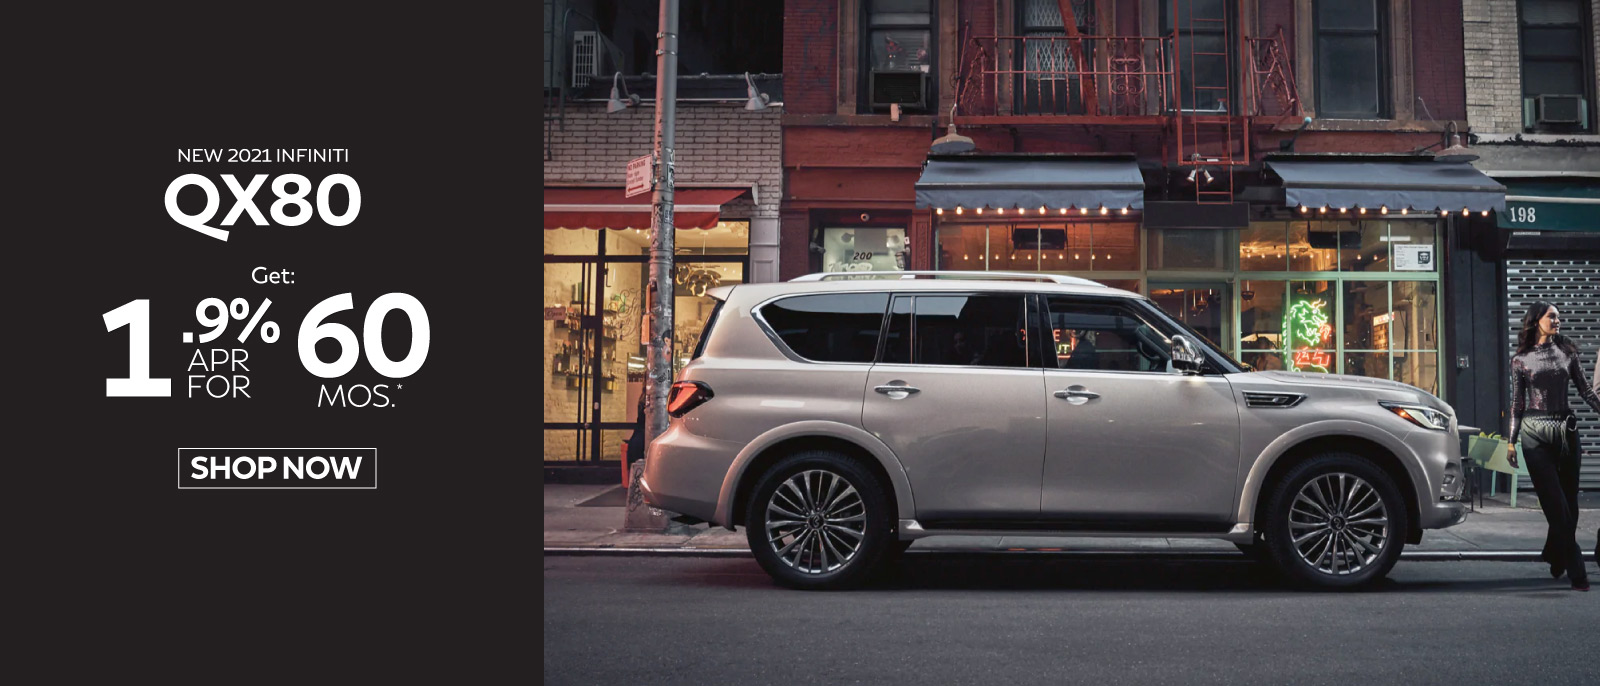 New 2021 INFINITI QX80 lease for $799 a month with $6799 due at signing. Click here to begin shopping.